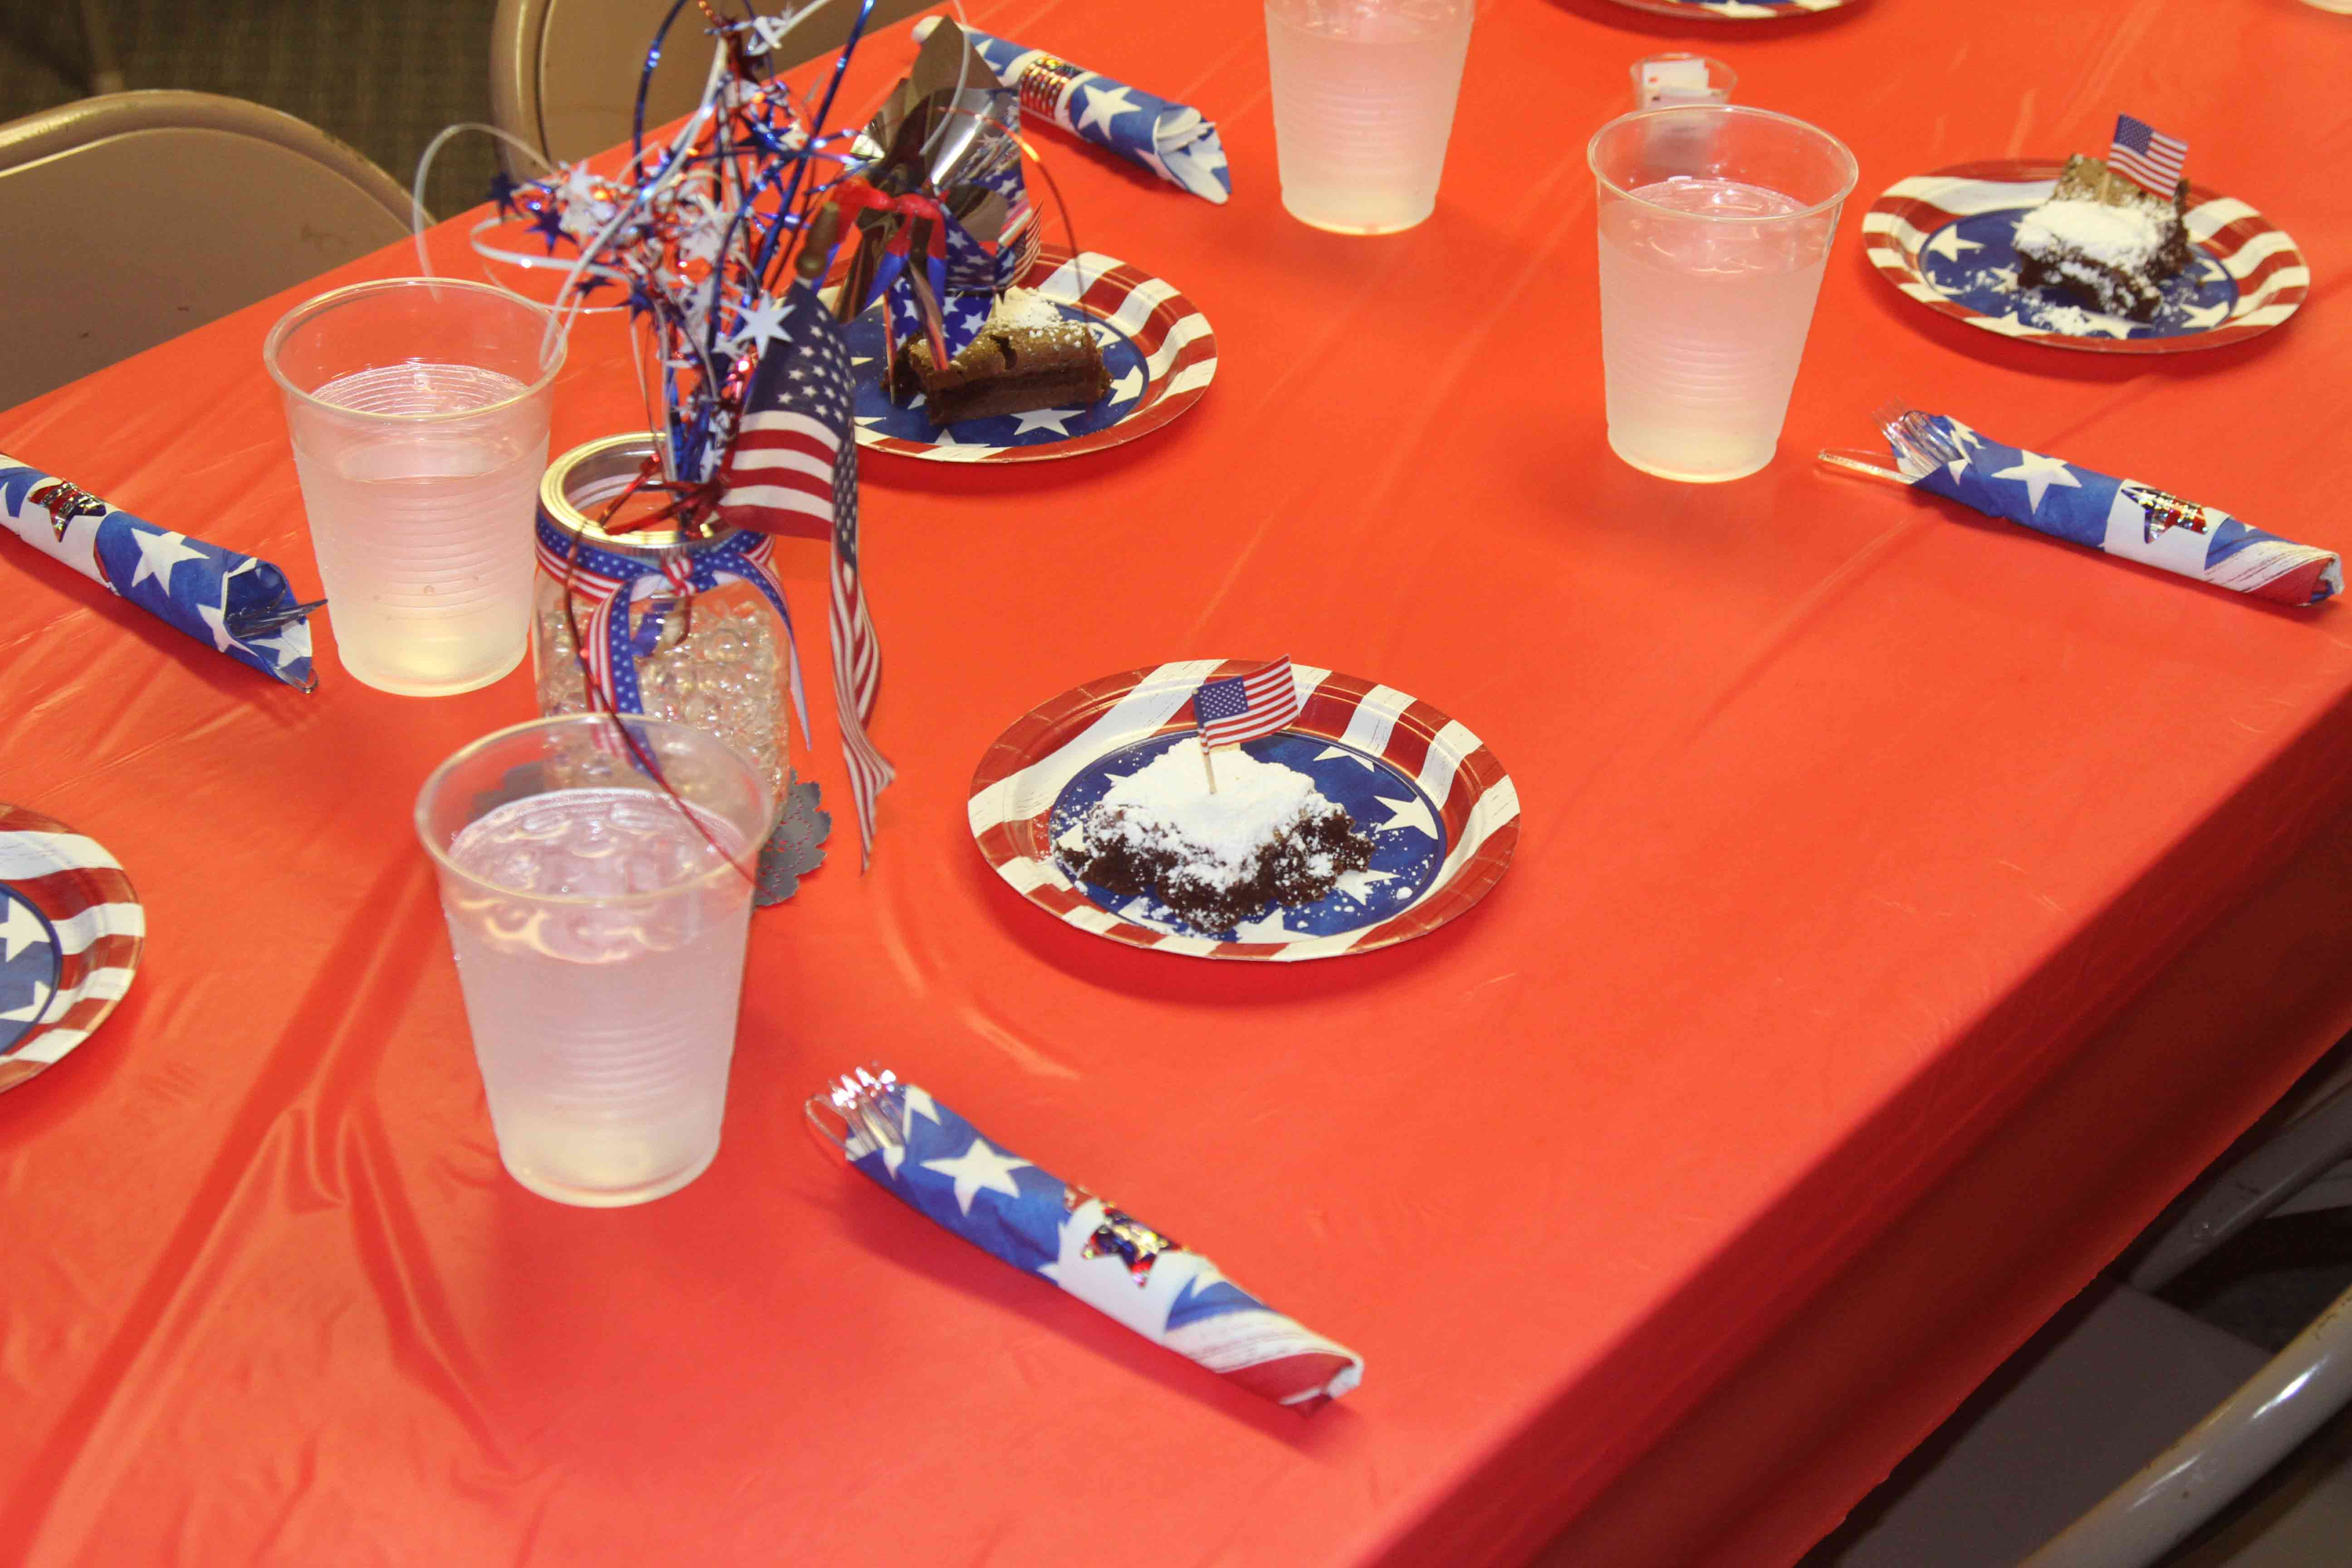 This patriotic place setting greeted all who sat down for dinner at the event.